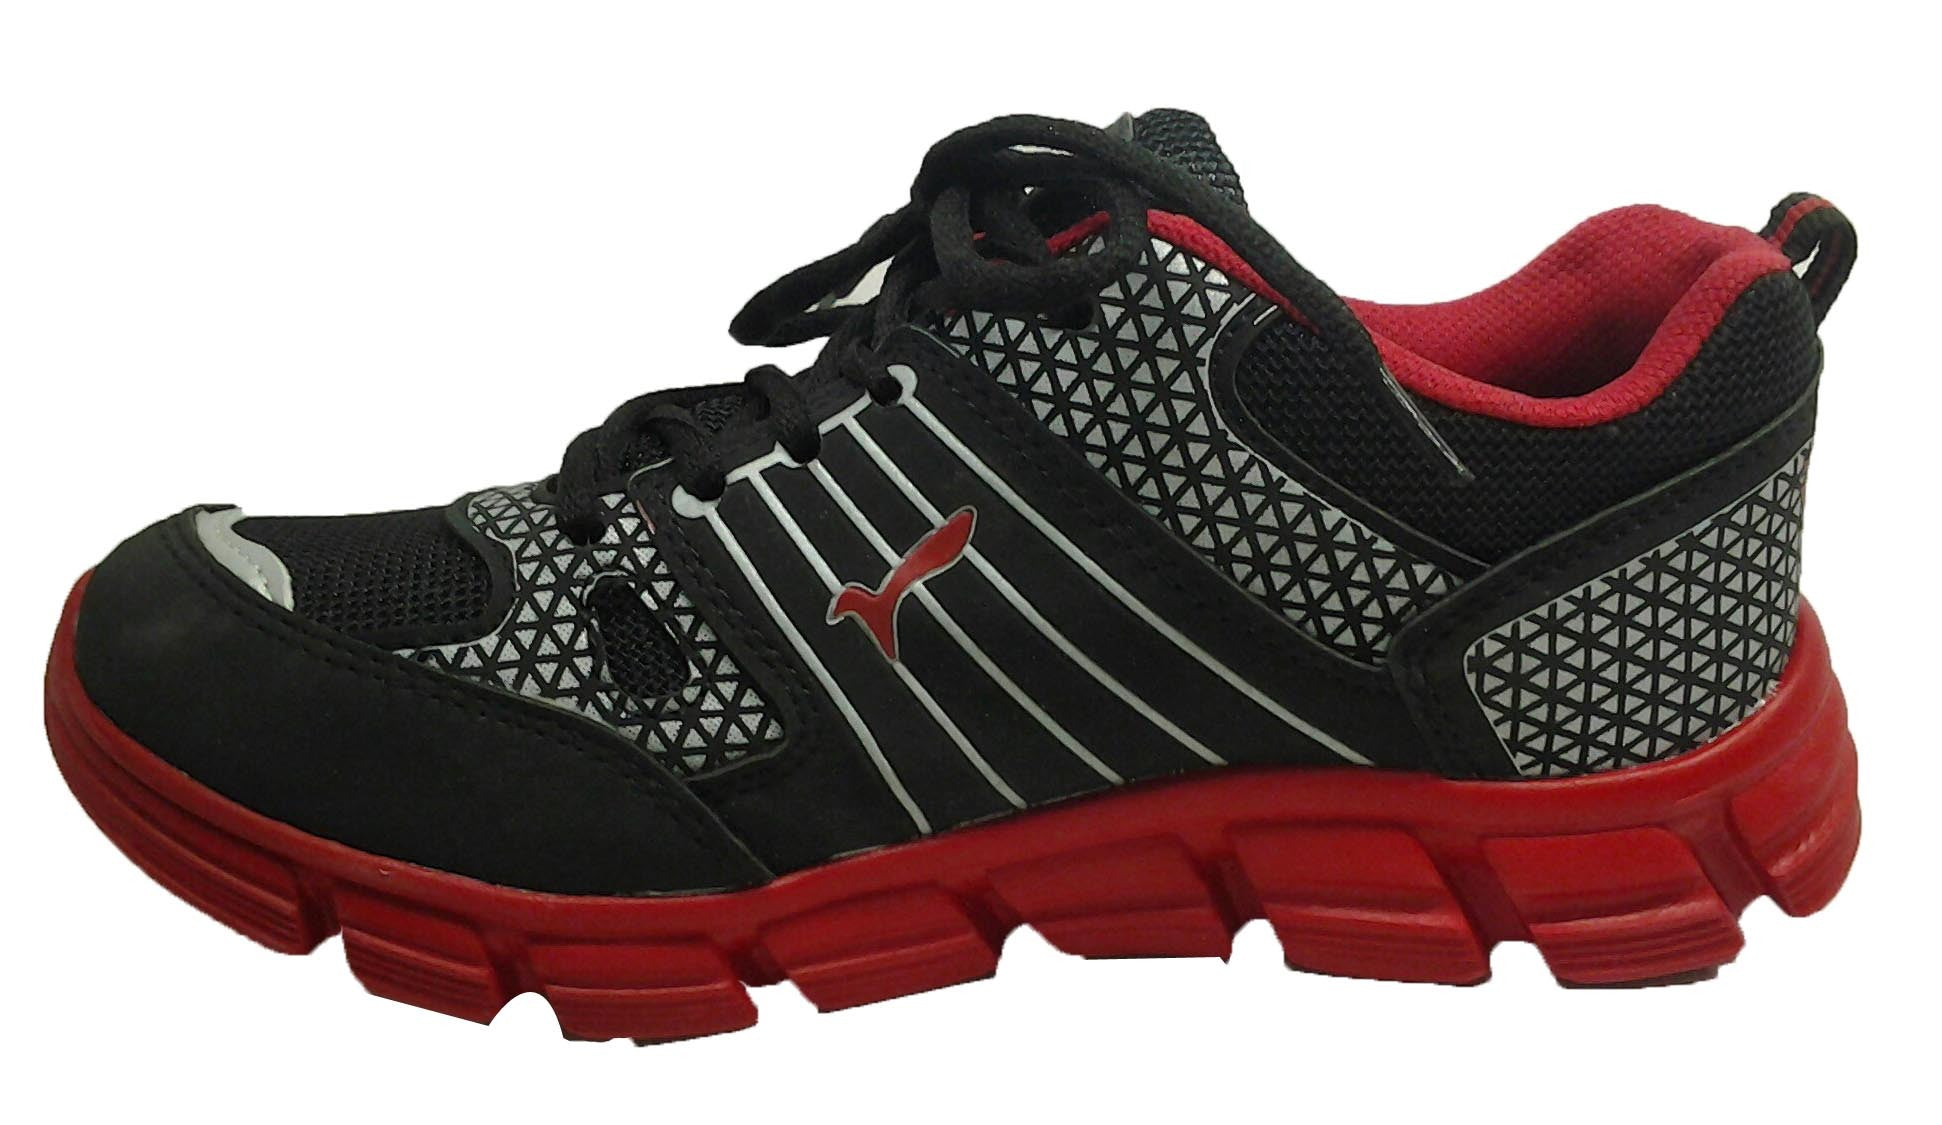 Goyalsons Sport Shoes Wsl 406